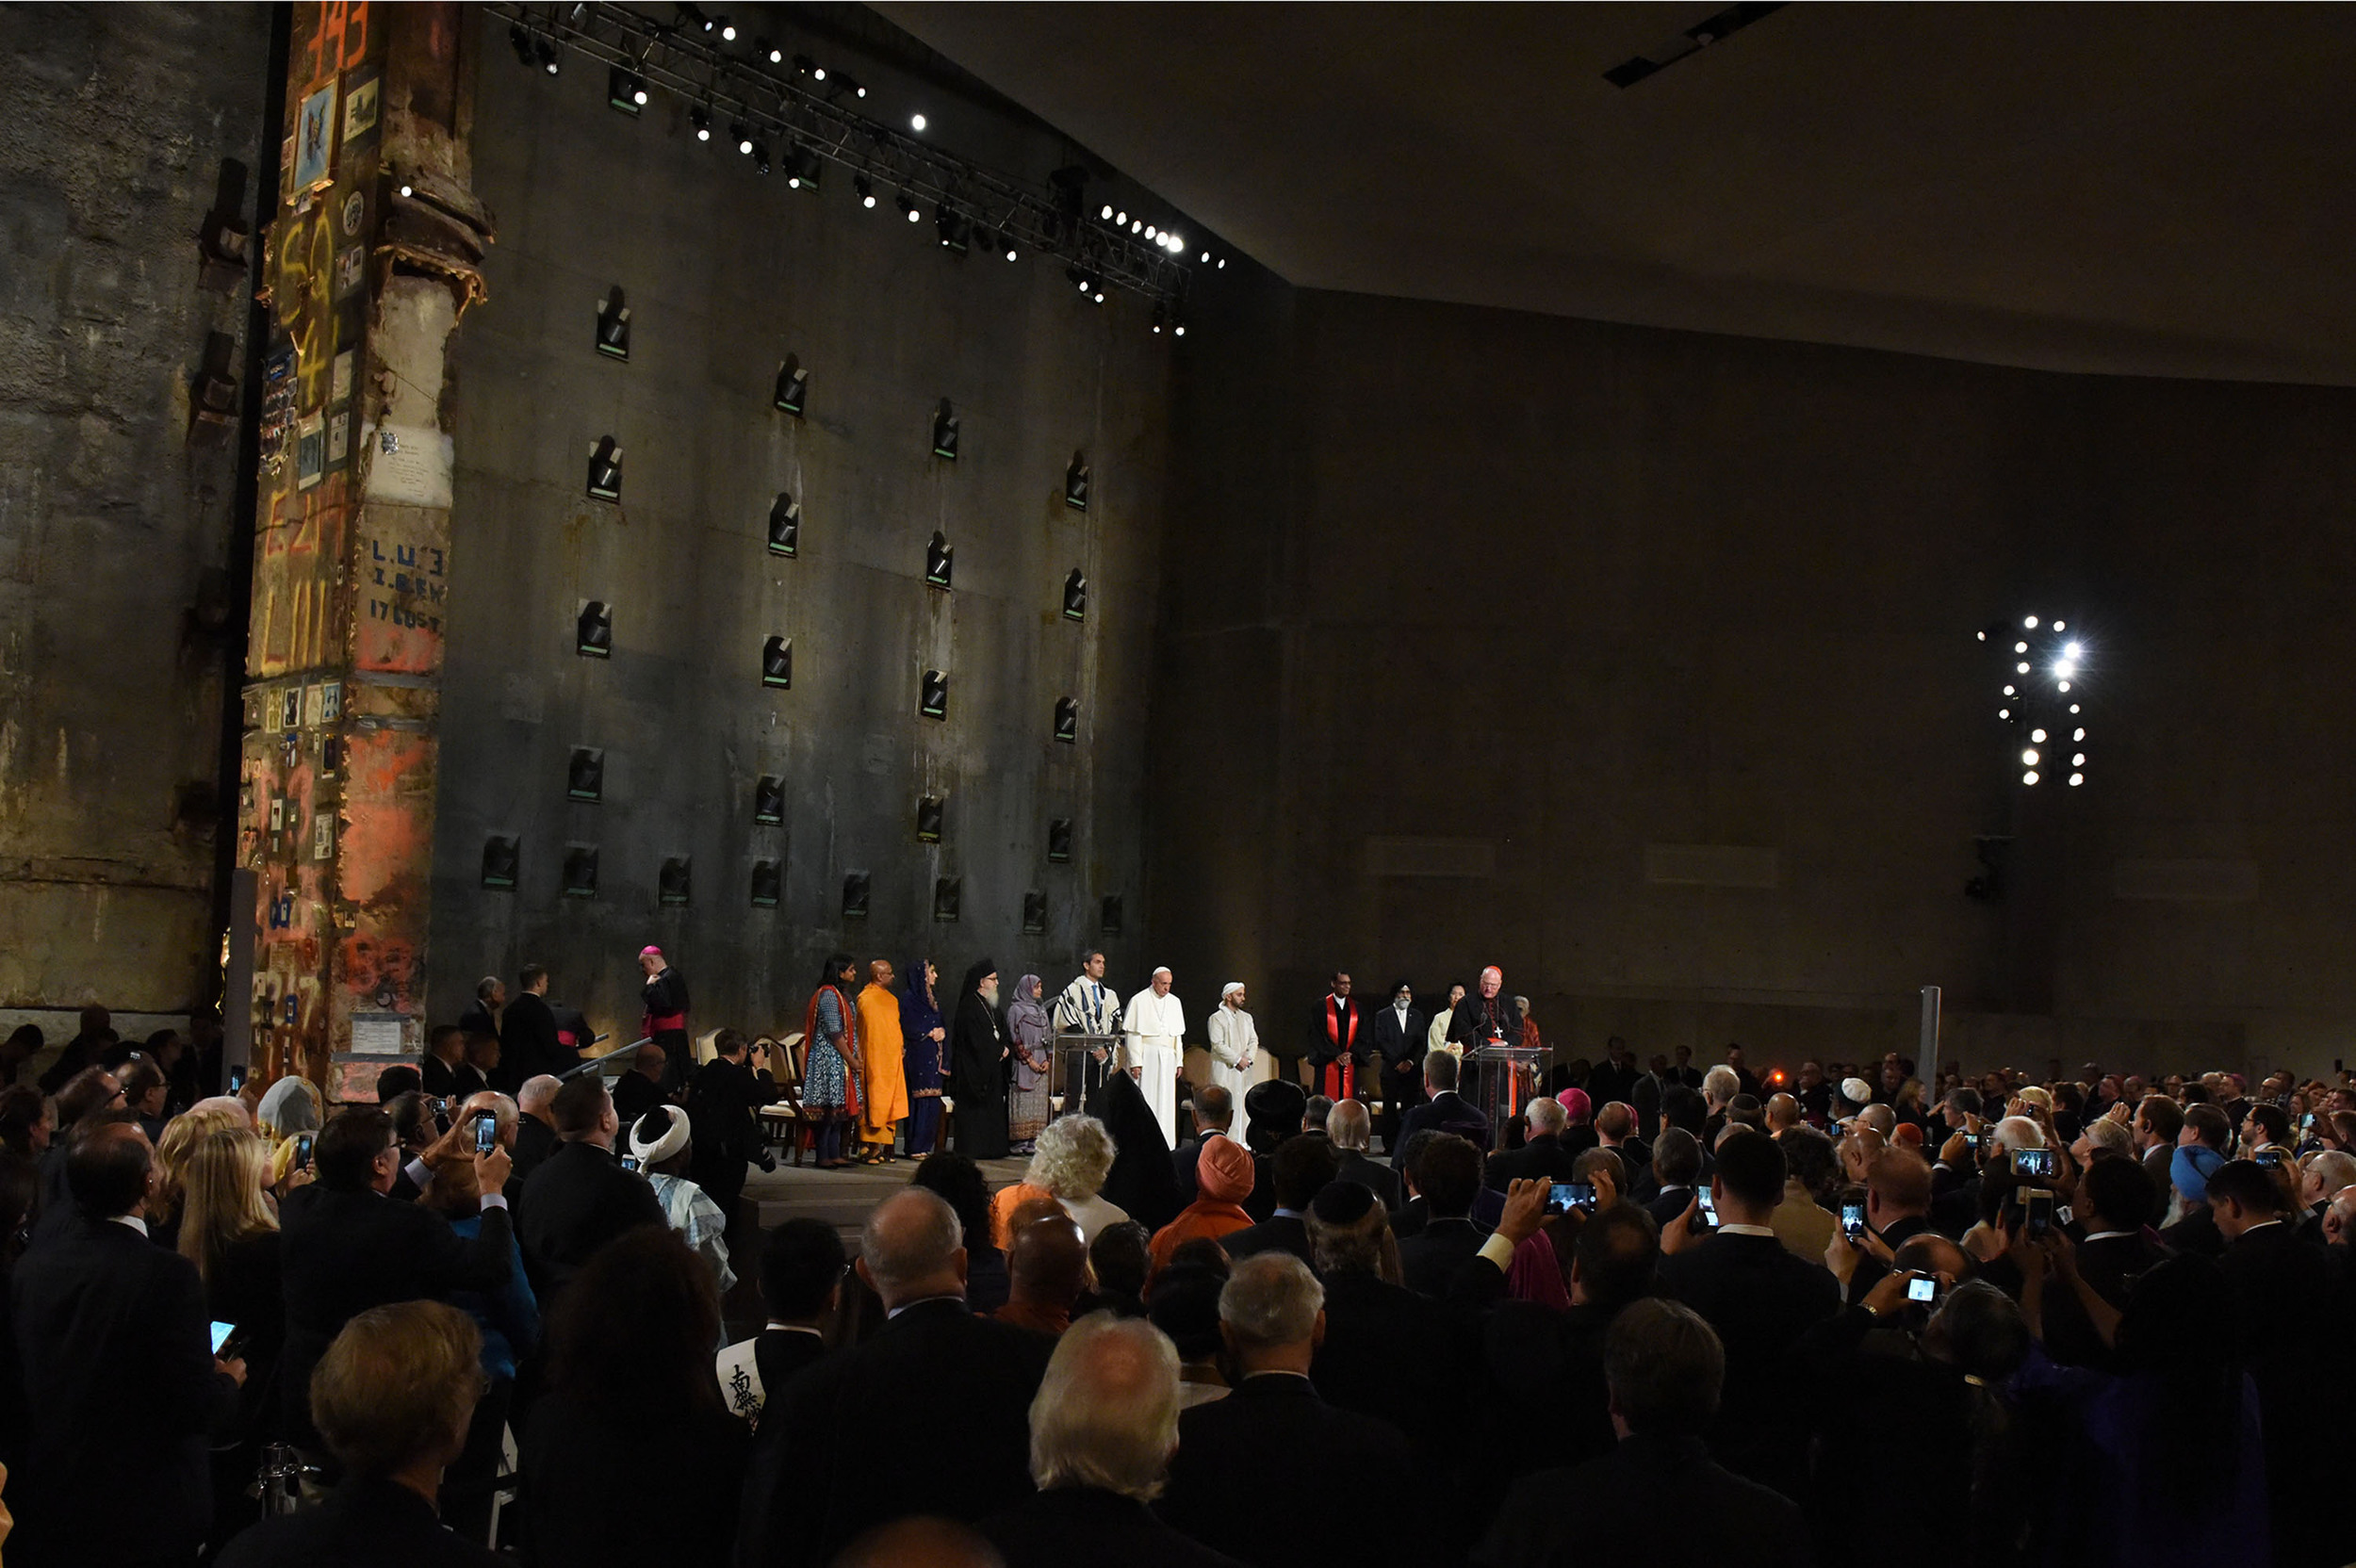 """The  """"Multi-Religious Gathering With Pope Francis""""  was held Friday morning September 25, 2015 at the """"National September 11 Memorial and Museum"""".  The service included clergy from many different faiths who sat on the stage and presented readings during the service."""